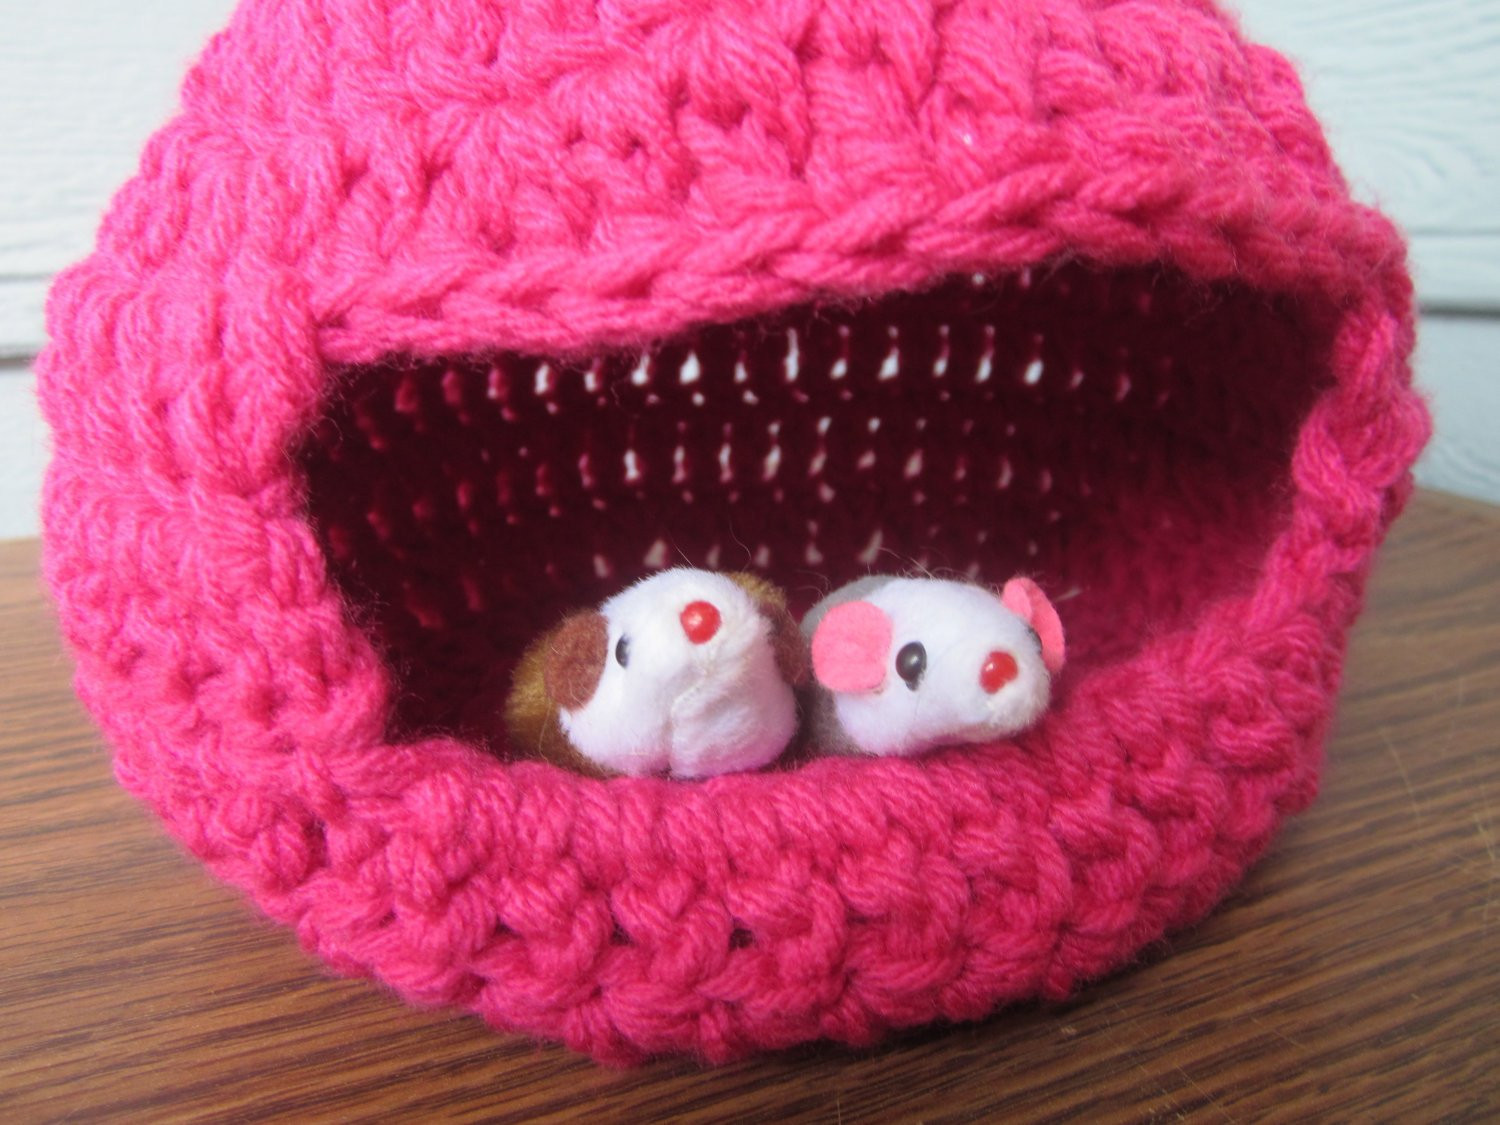 Crochet Dog Beds Inspirational Pink Crochet Pet House Collapsible Bed for Mice Gerbils Of Charming 50 Ideas Crochet Dog Beds